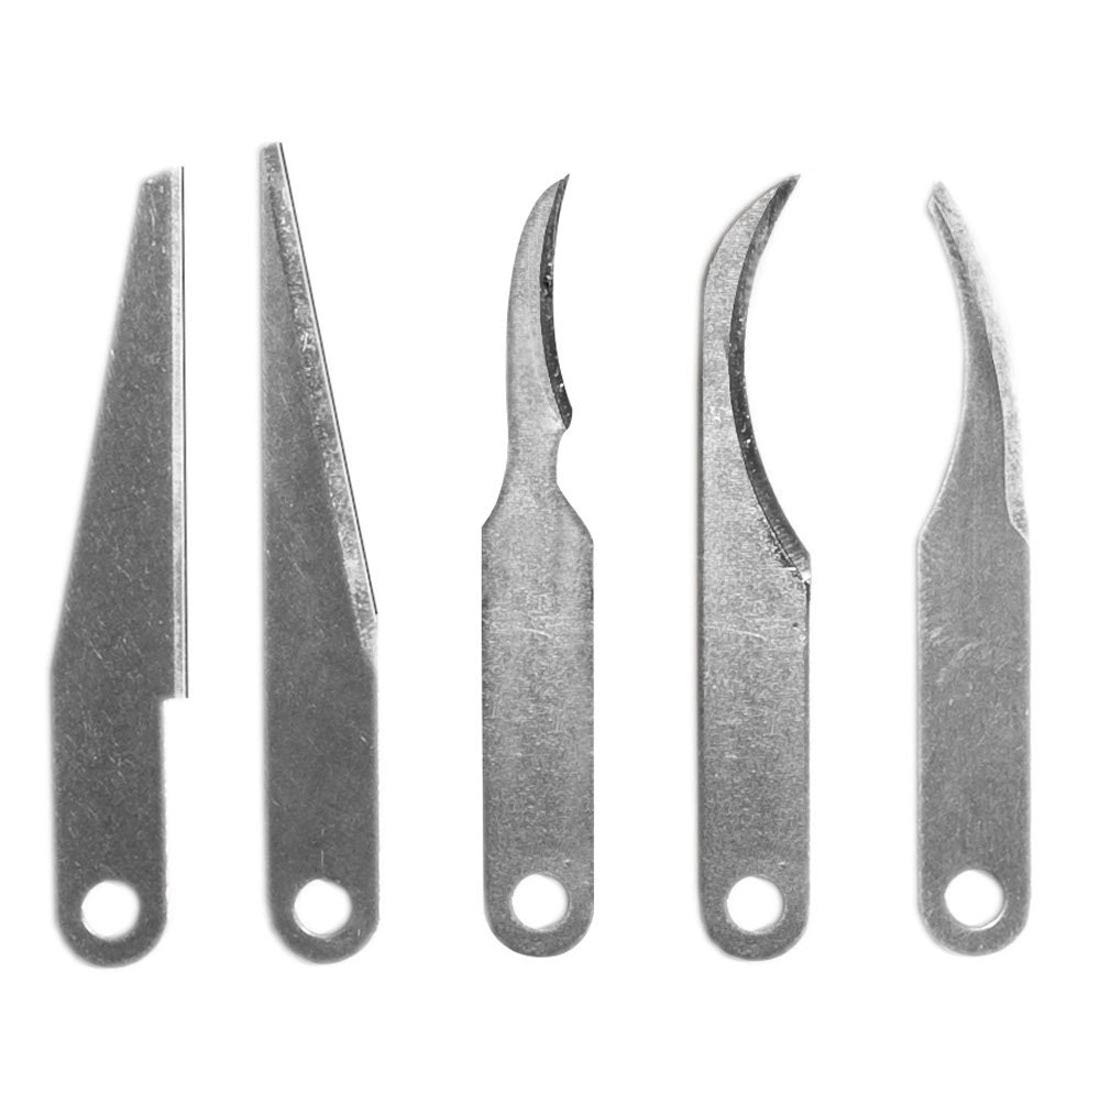 Excel Exl20108 Carving Blades - 5pcs, Assorted